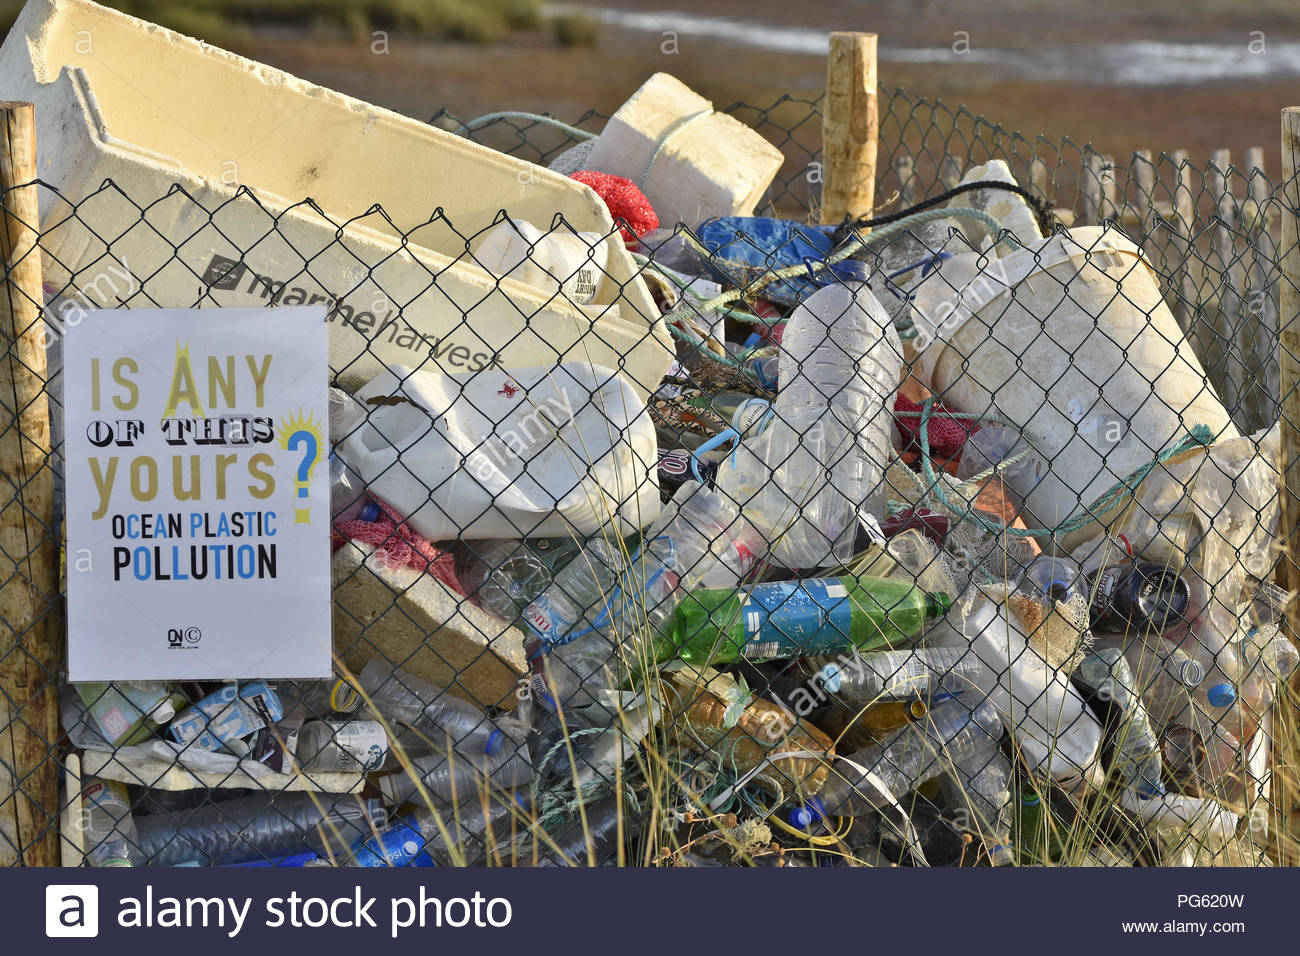 Plastic rubbish collected to raise awareness of environmental pollution, Olhao Algarve Southern Portugal Europe. - Stock Image